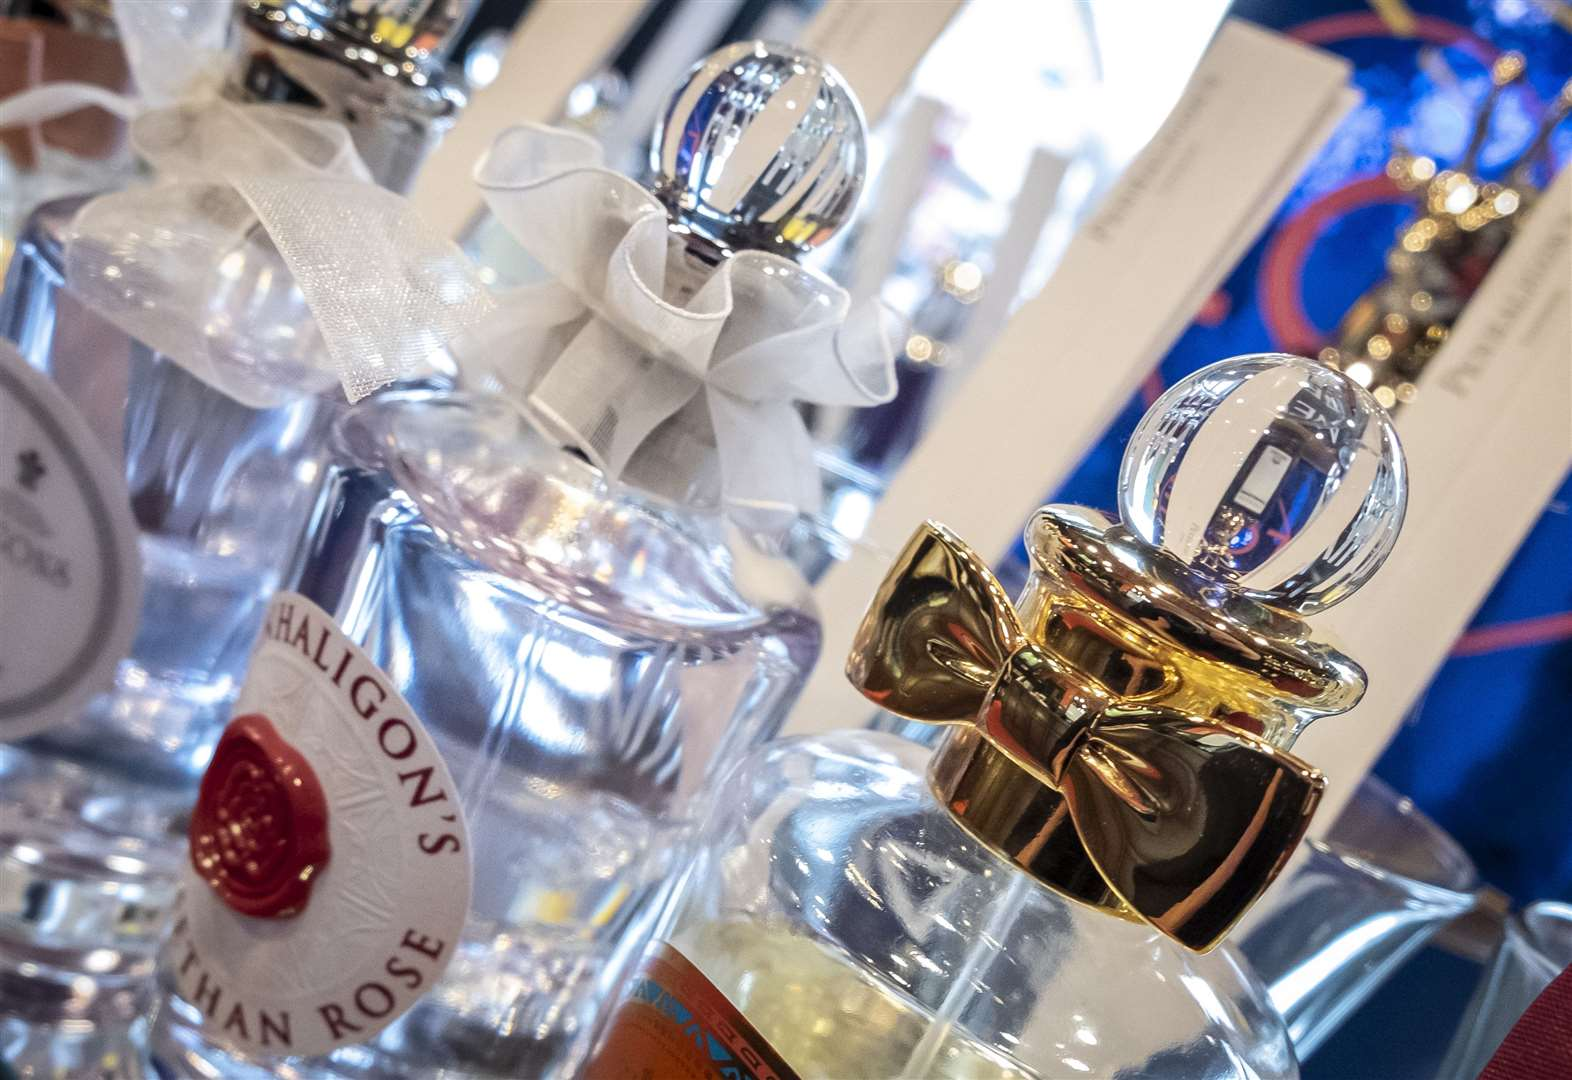 Heavenly scents: the Penhaligon's story